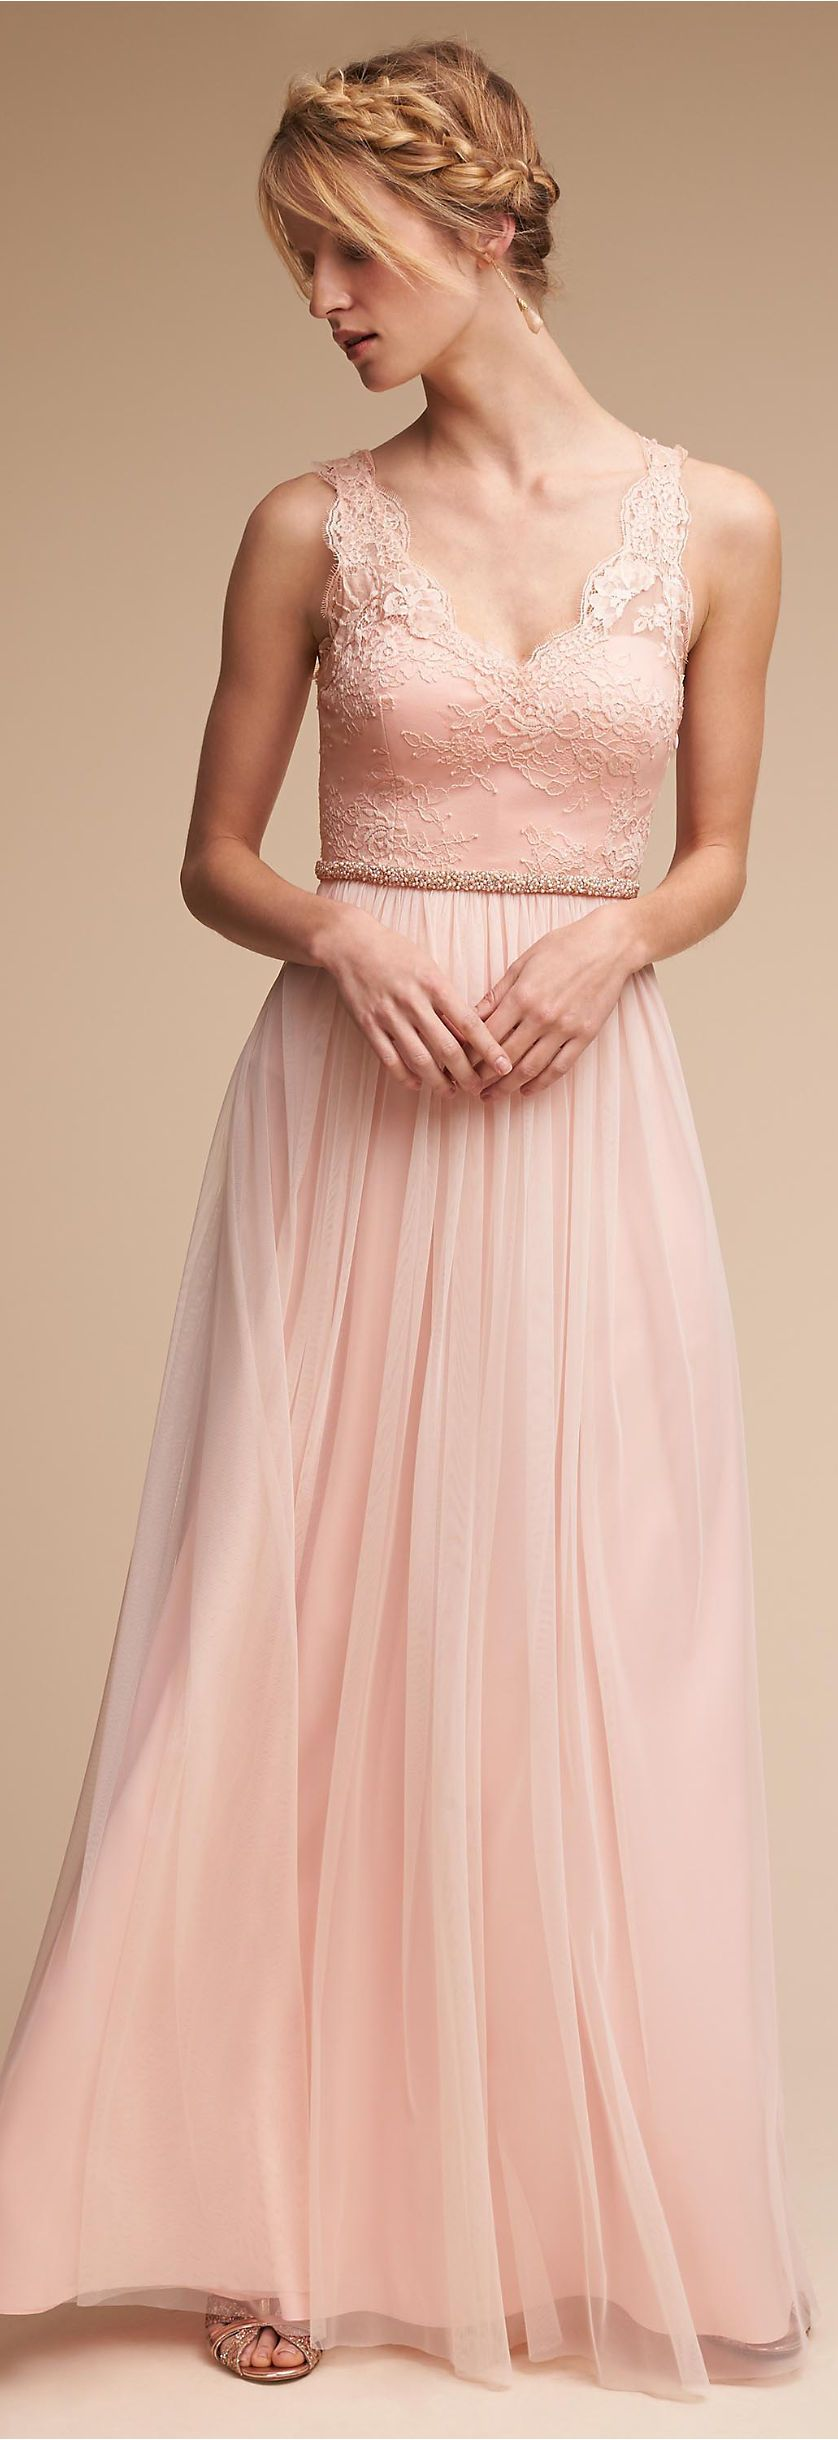 Blush lace Bridesmaid Dress | BHLDN | bridesmaids | Pinterest ...